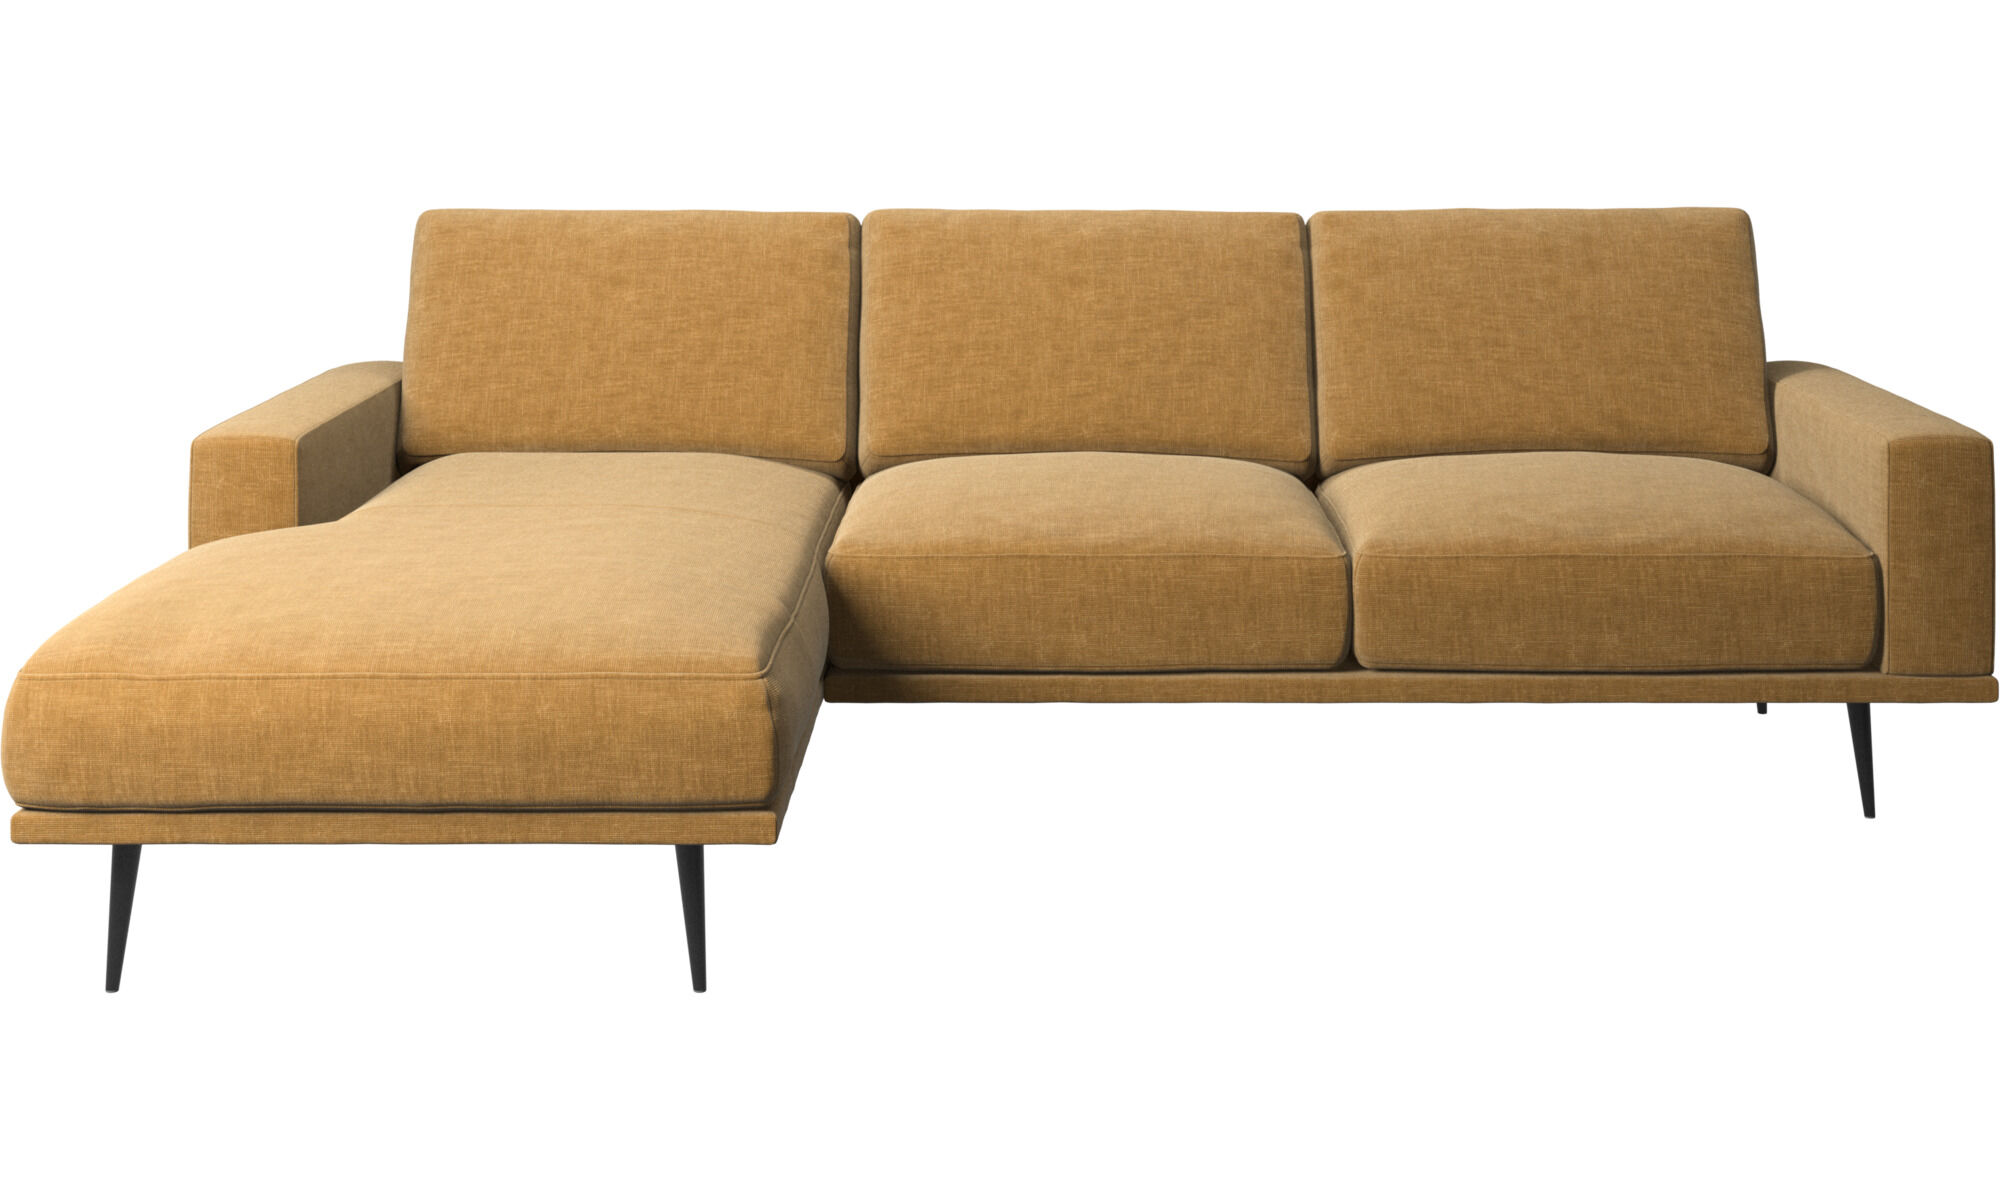 Chaise lounge sofas - Carlton sofa with resting unit - Beige - Fabric  sc 1 st  BoConcept : chaise lounge furniture - Sectionals, Sofas & Couches